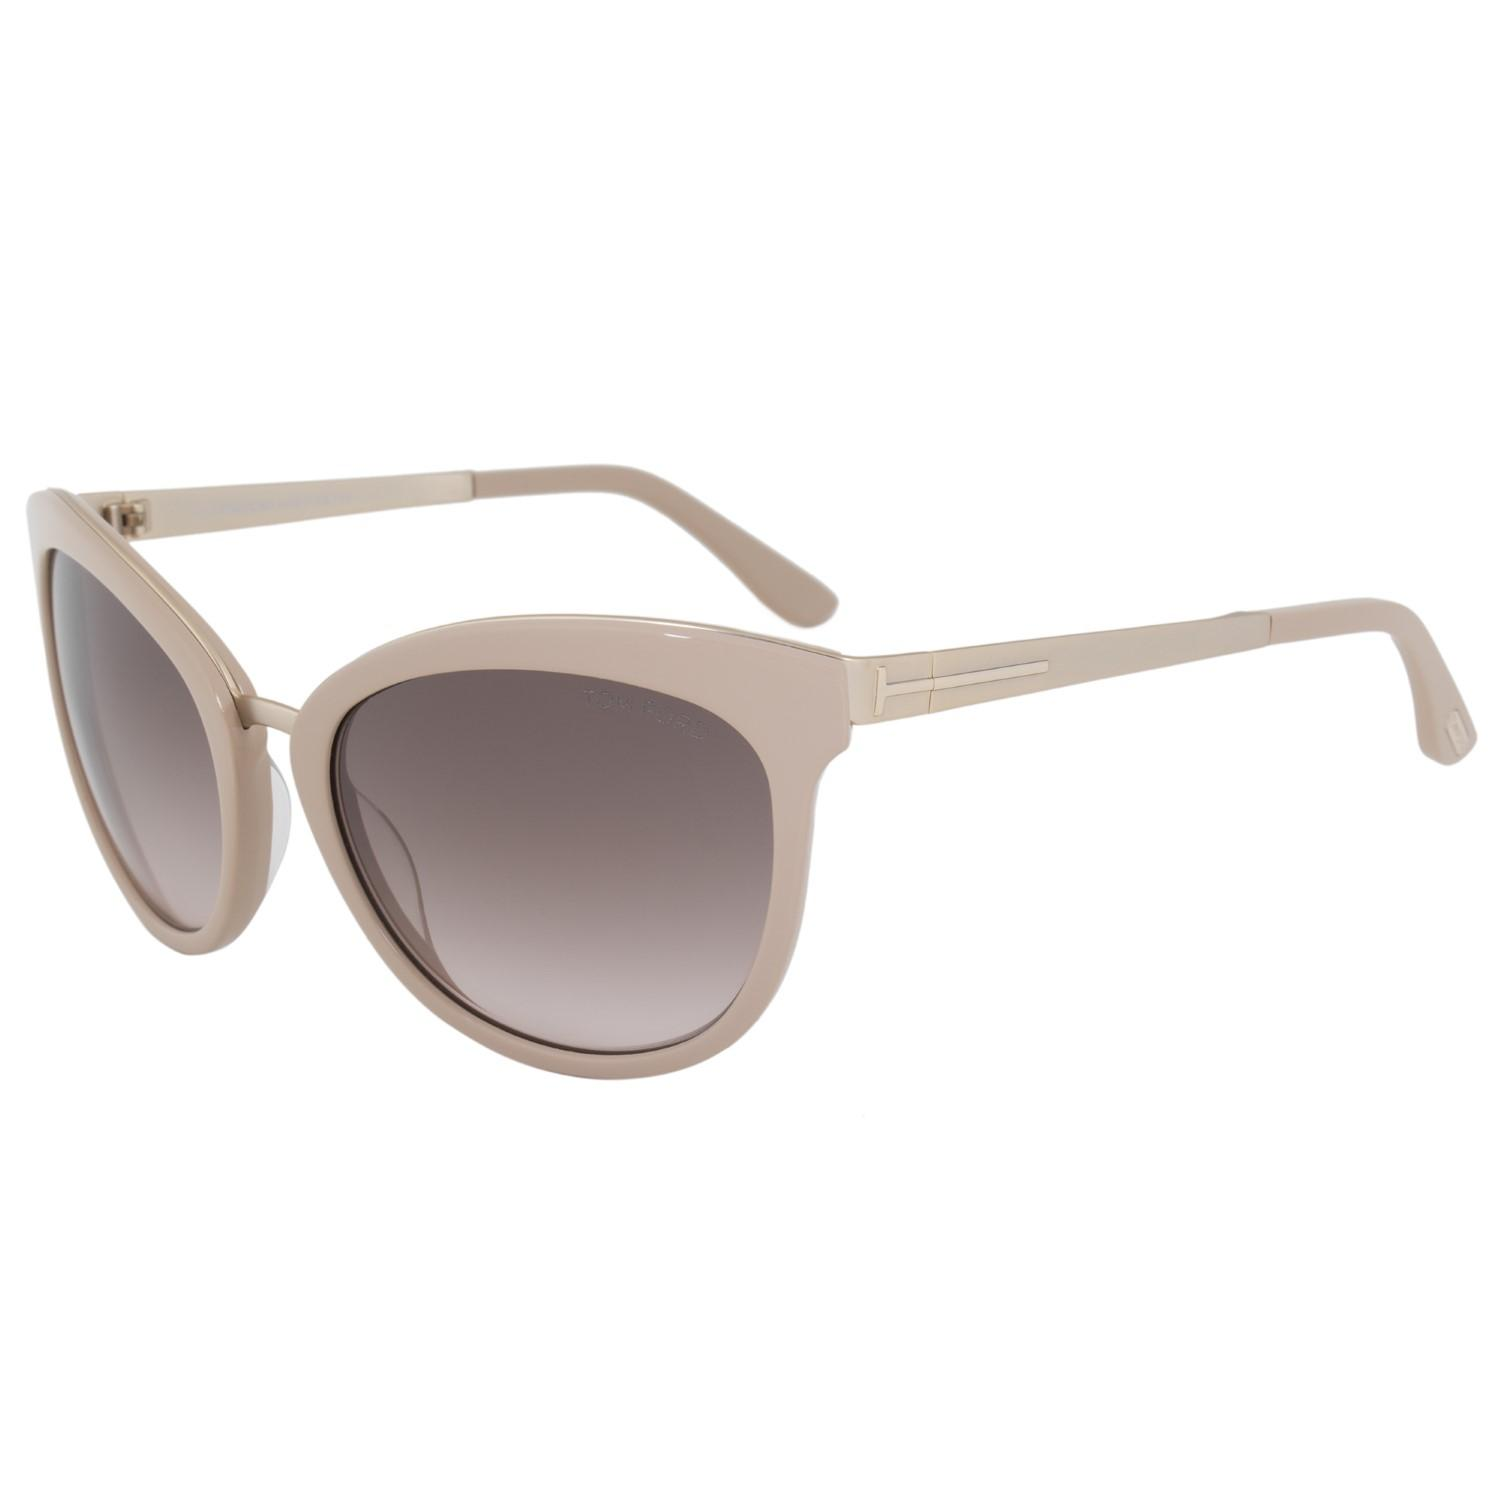 6705219cdce4 Tom Ford - Ft0461 Sunglasses Pink   Brown Rose - Lyst. View fullscreen